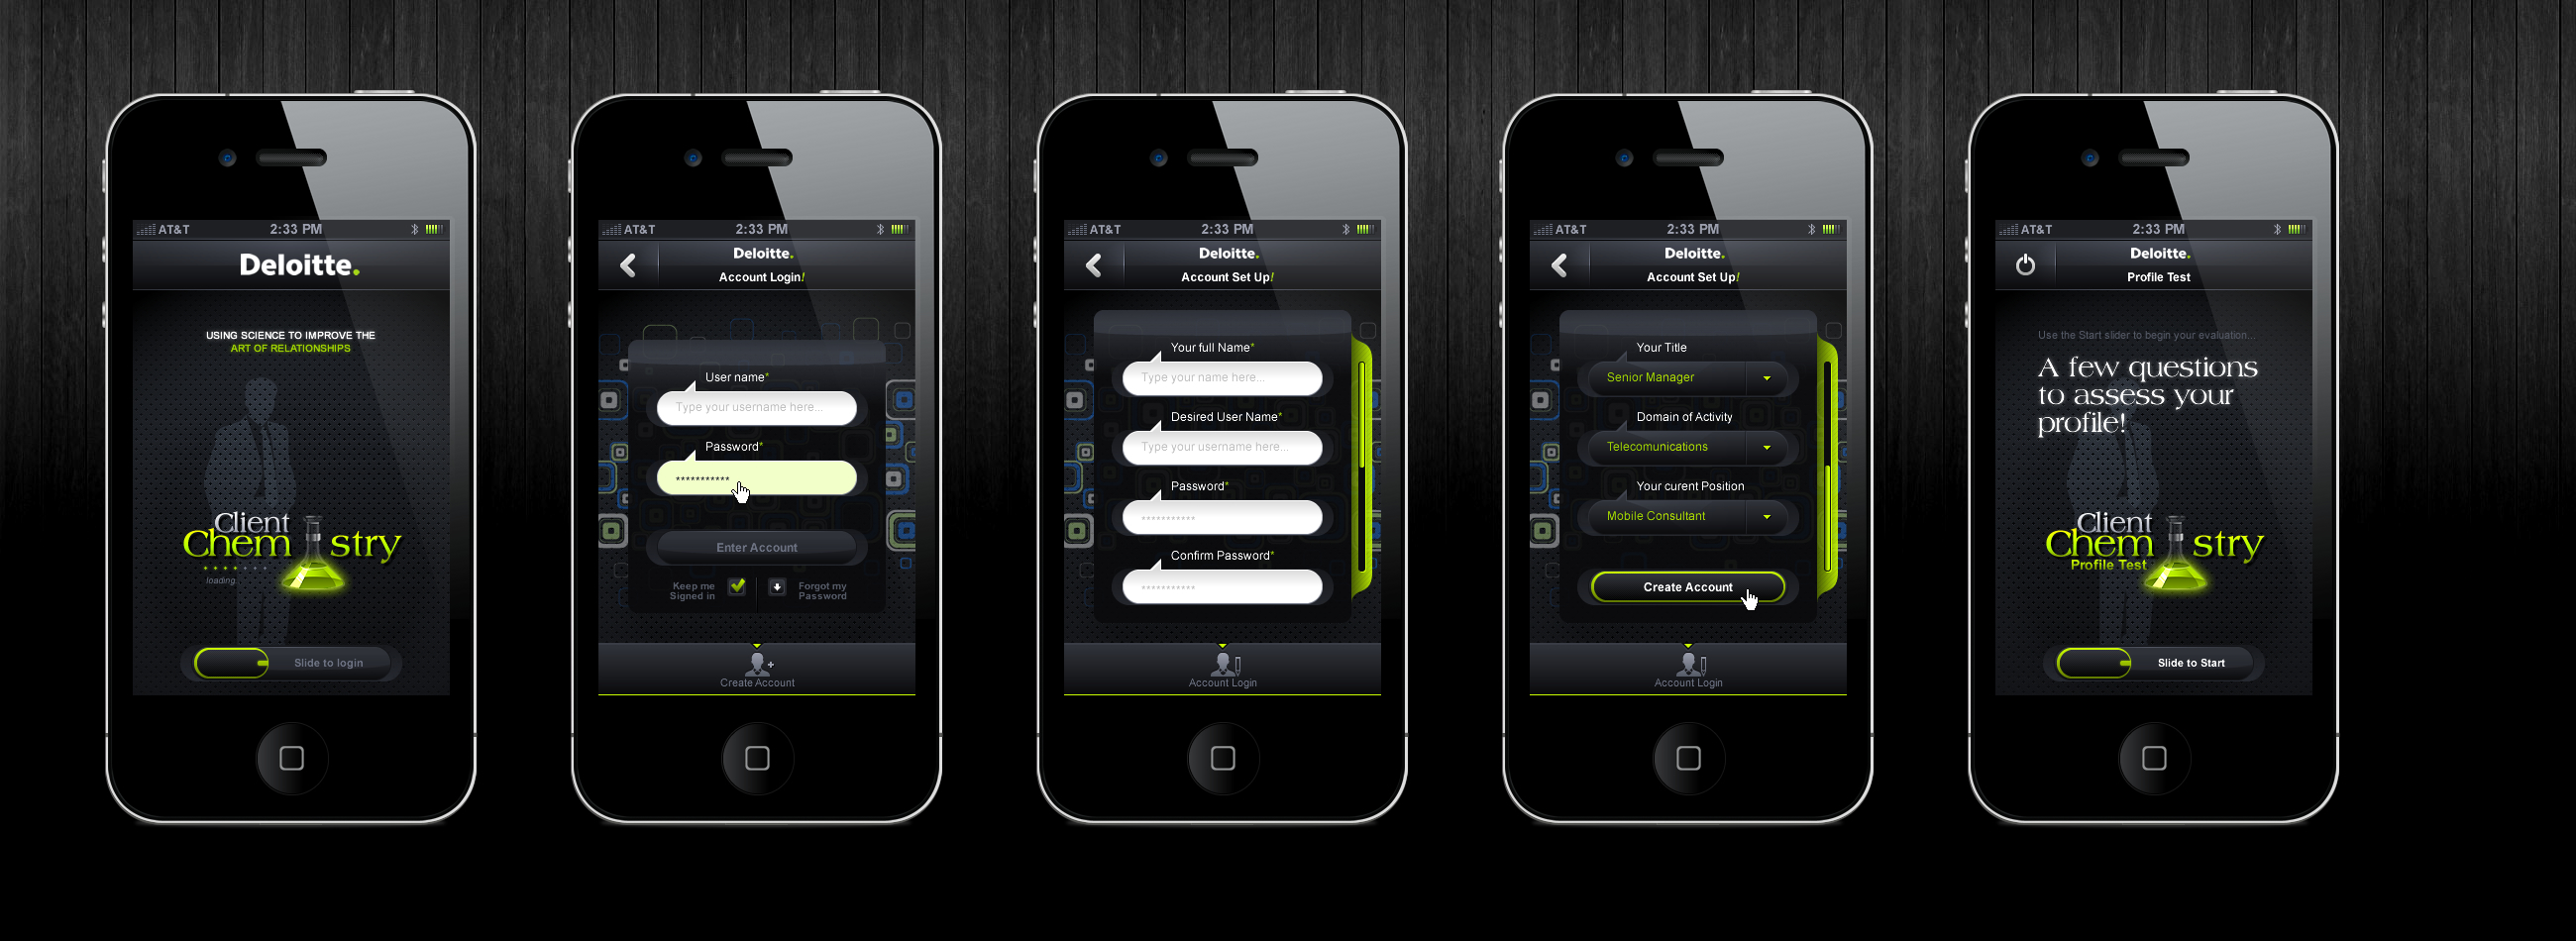 Iphone application design by sonyaxel on deviantart for Designing an iphone app